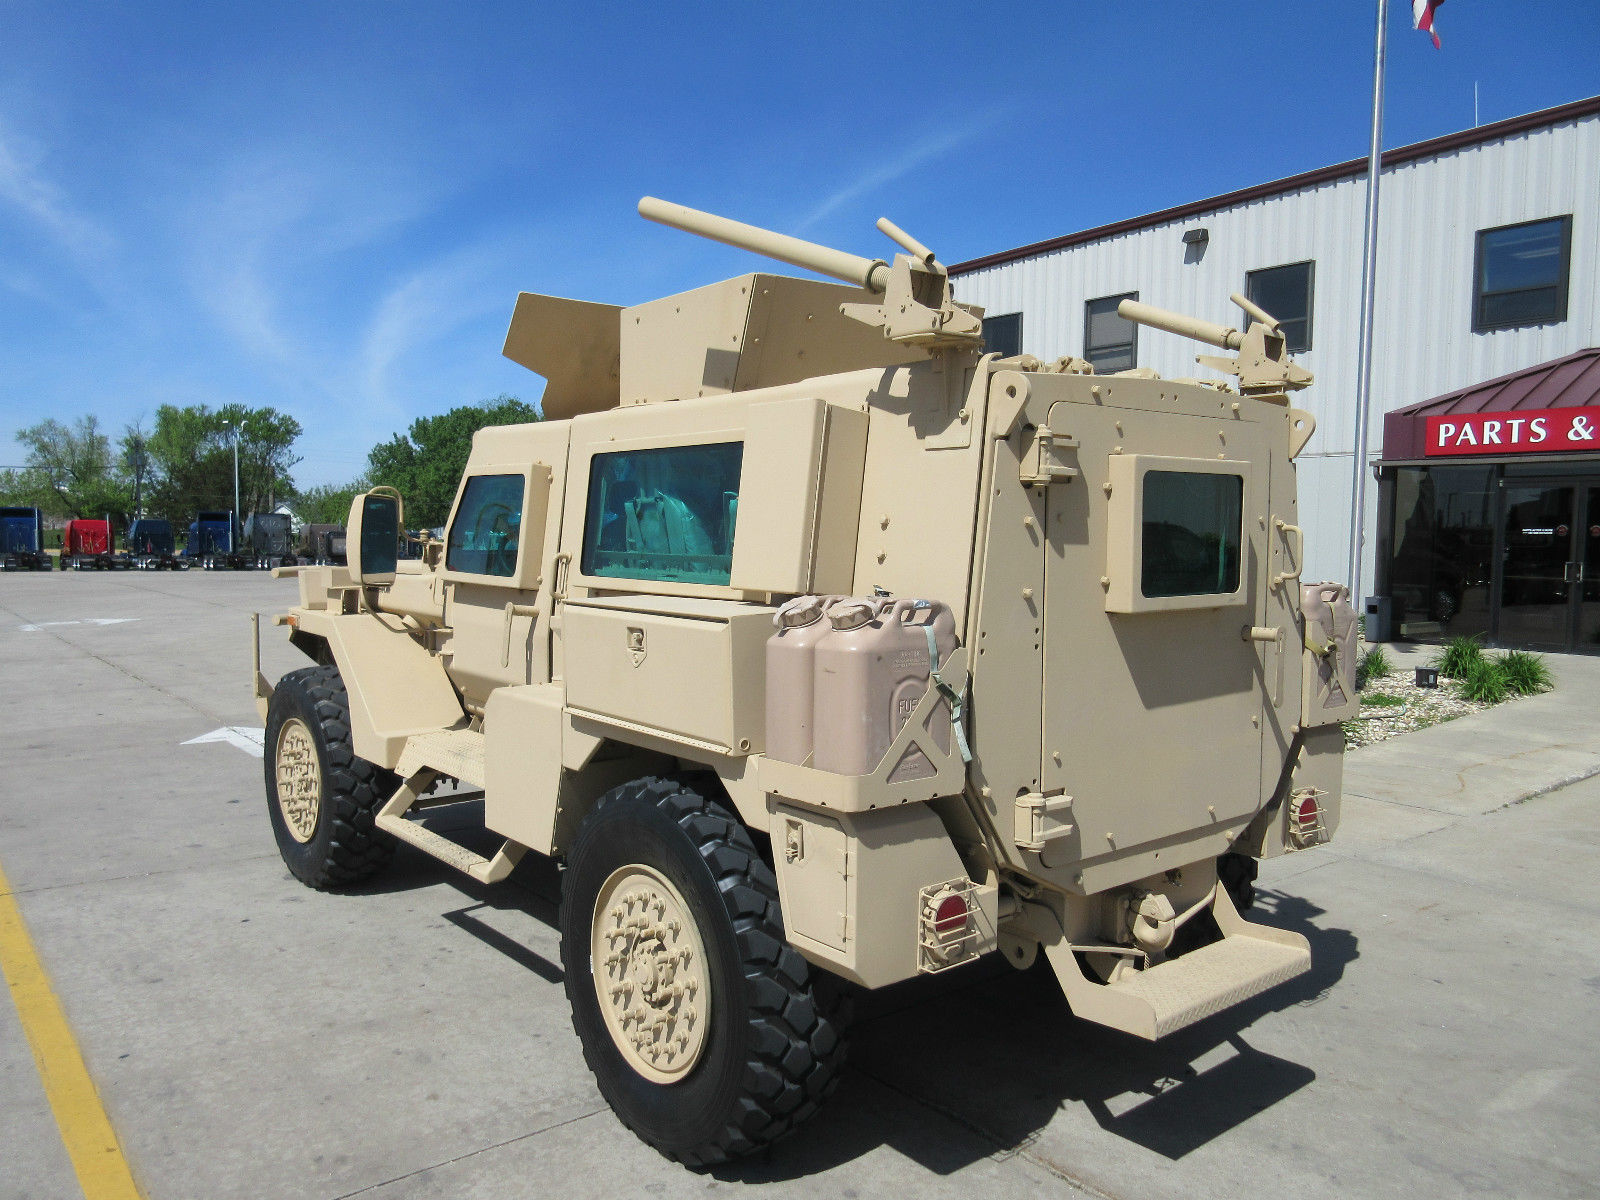 Armored Military Vehicles For Sale >> Used Armored Vehicles For Sale Used Armored Cars For .html | Autos Weblog